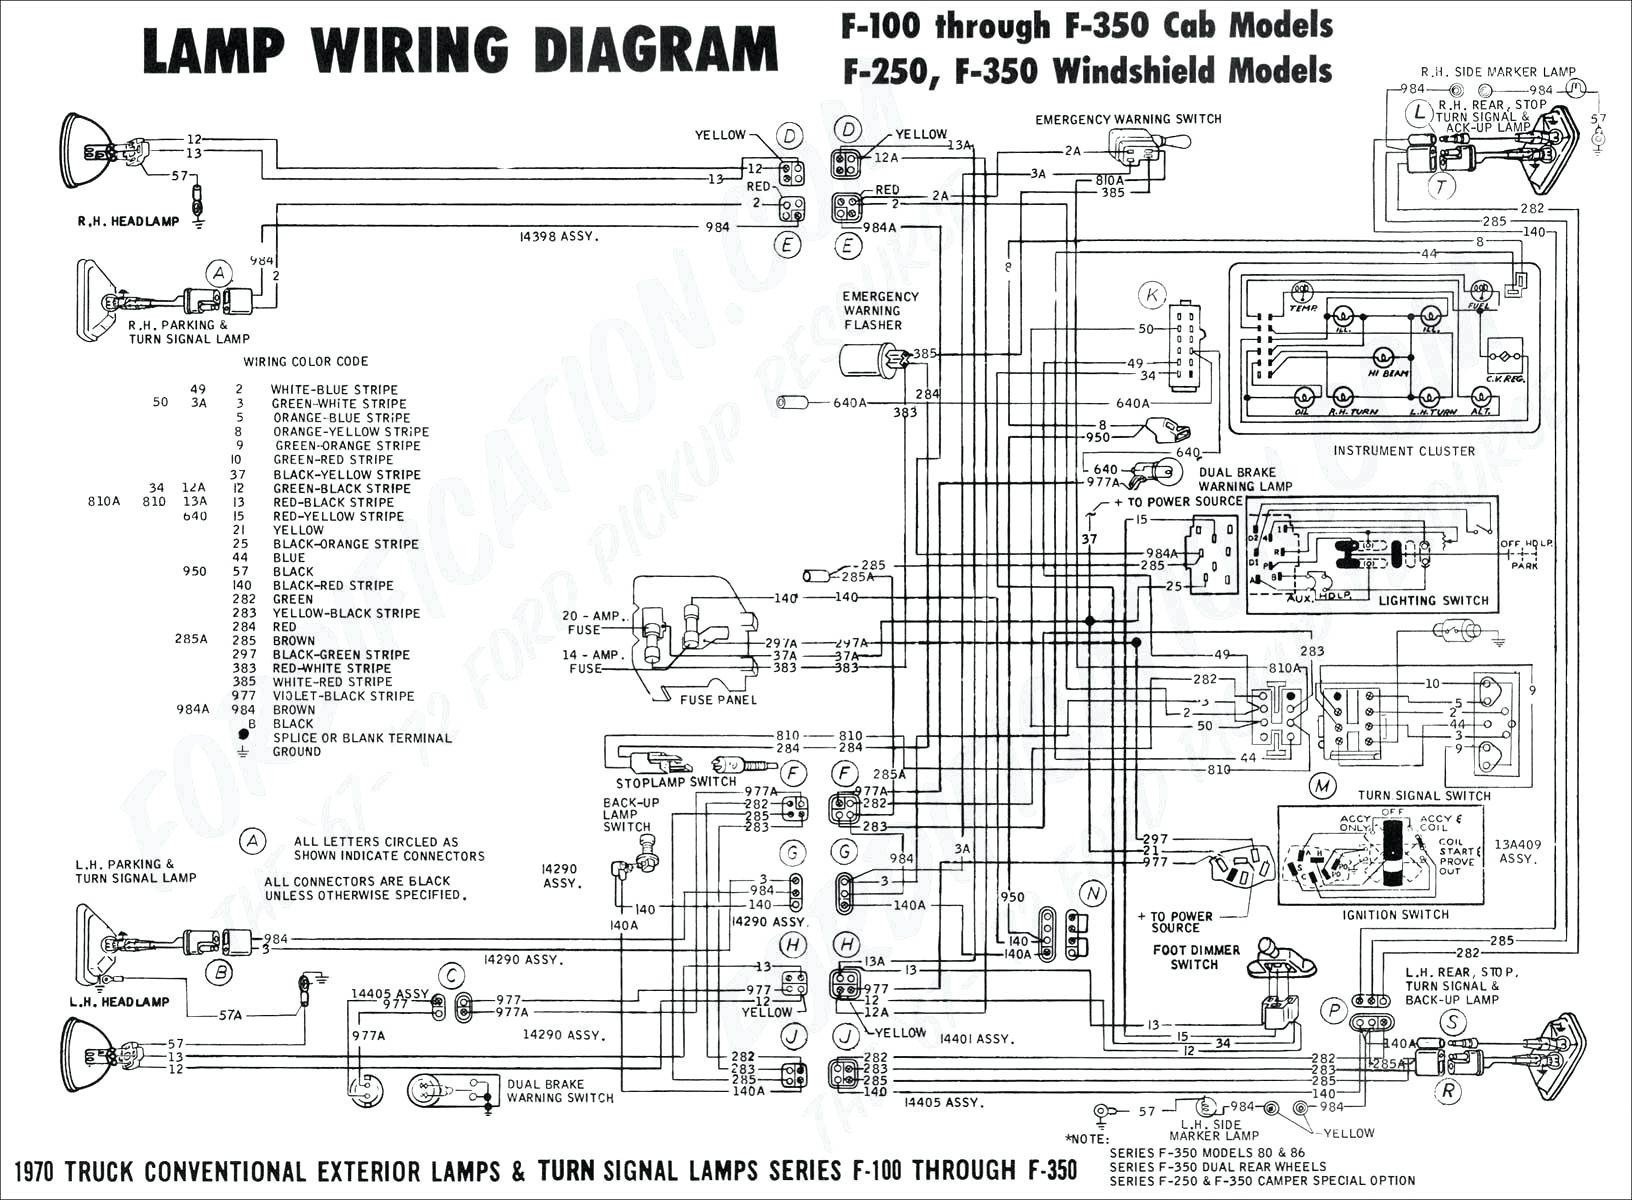 2000 Acura Tl Engine Diagram Acura 3 2 Tl Fuse Box Wiring Diagram Inside Of 2000 Acura Tl Engine Diagram